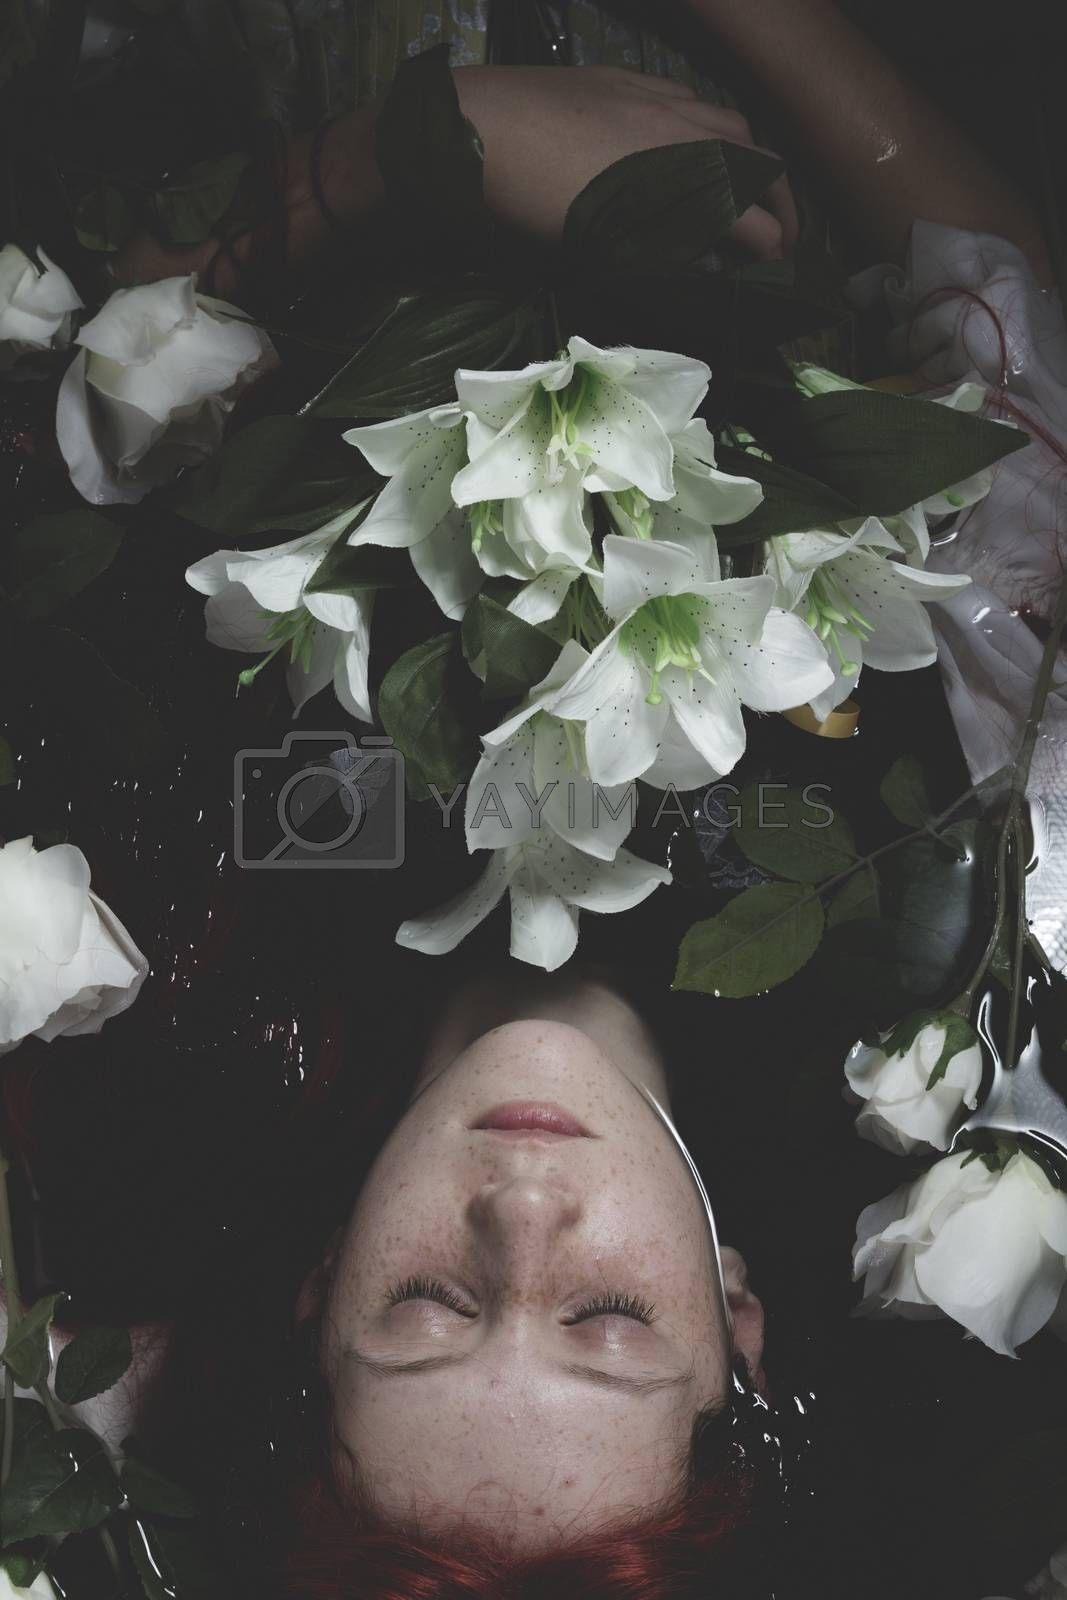 Innocence, Teen submerged in water with white roses, romance sce by FernandoCortes